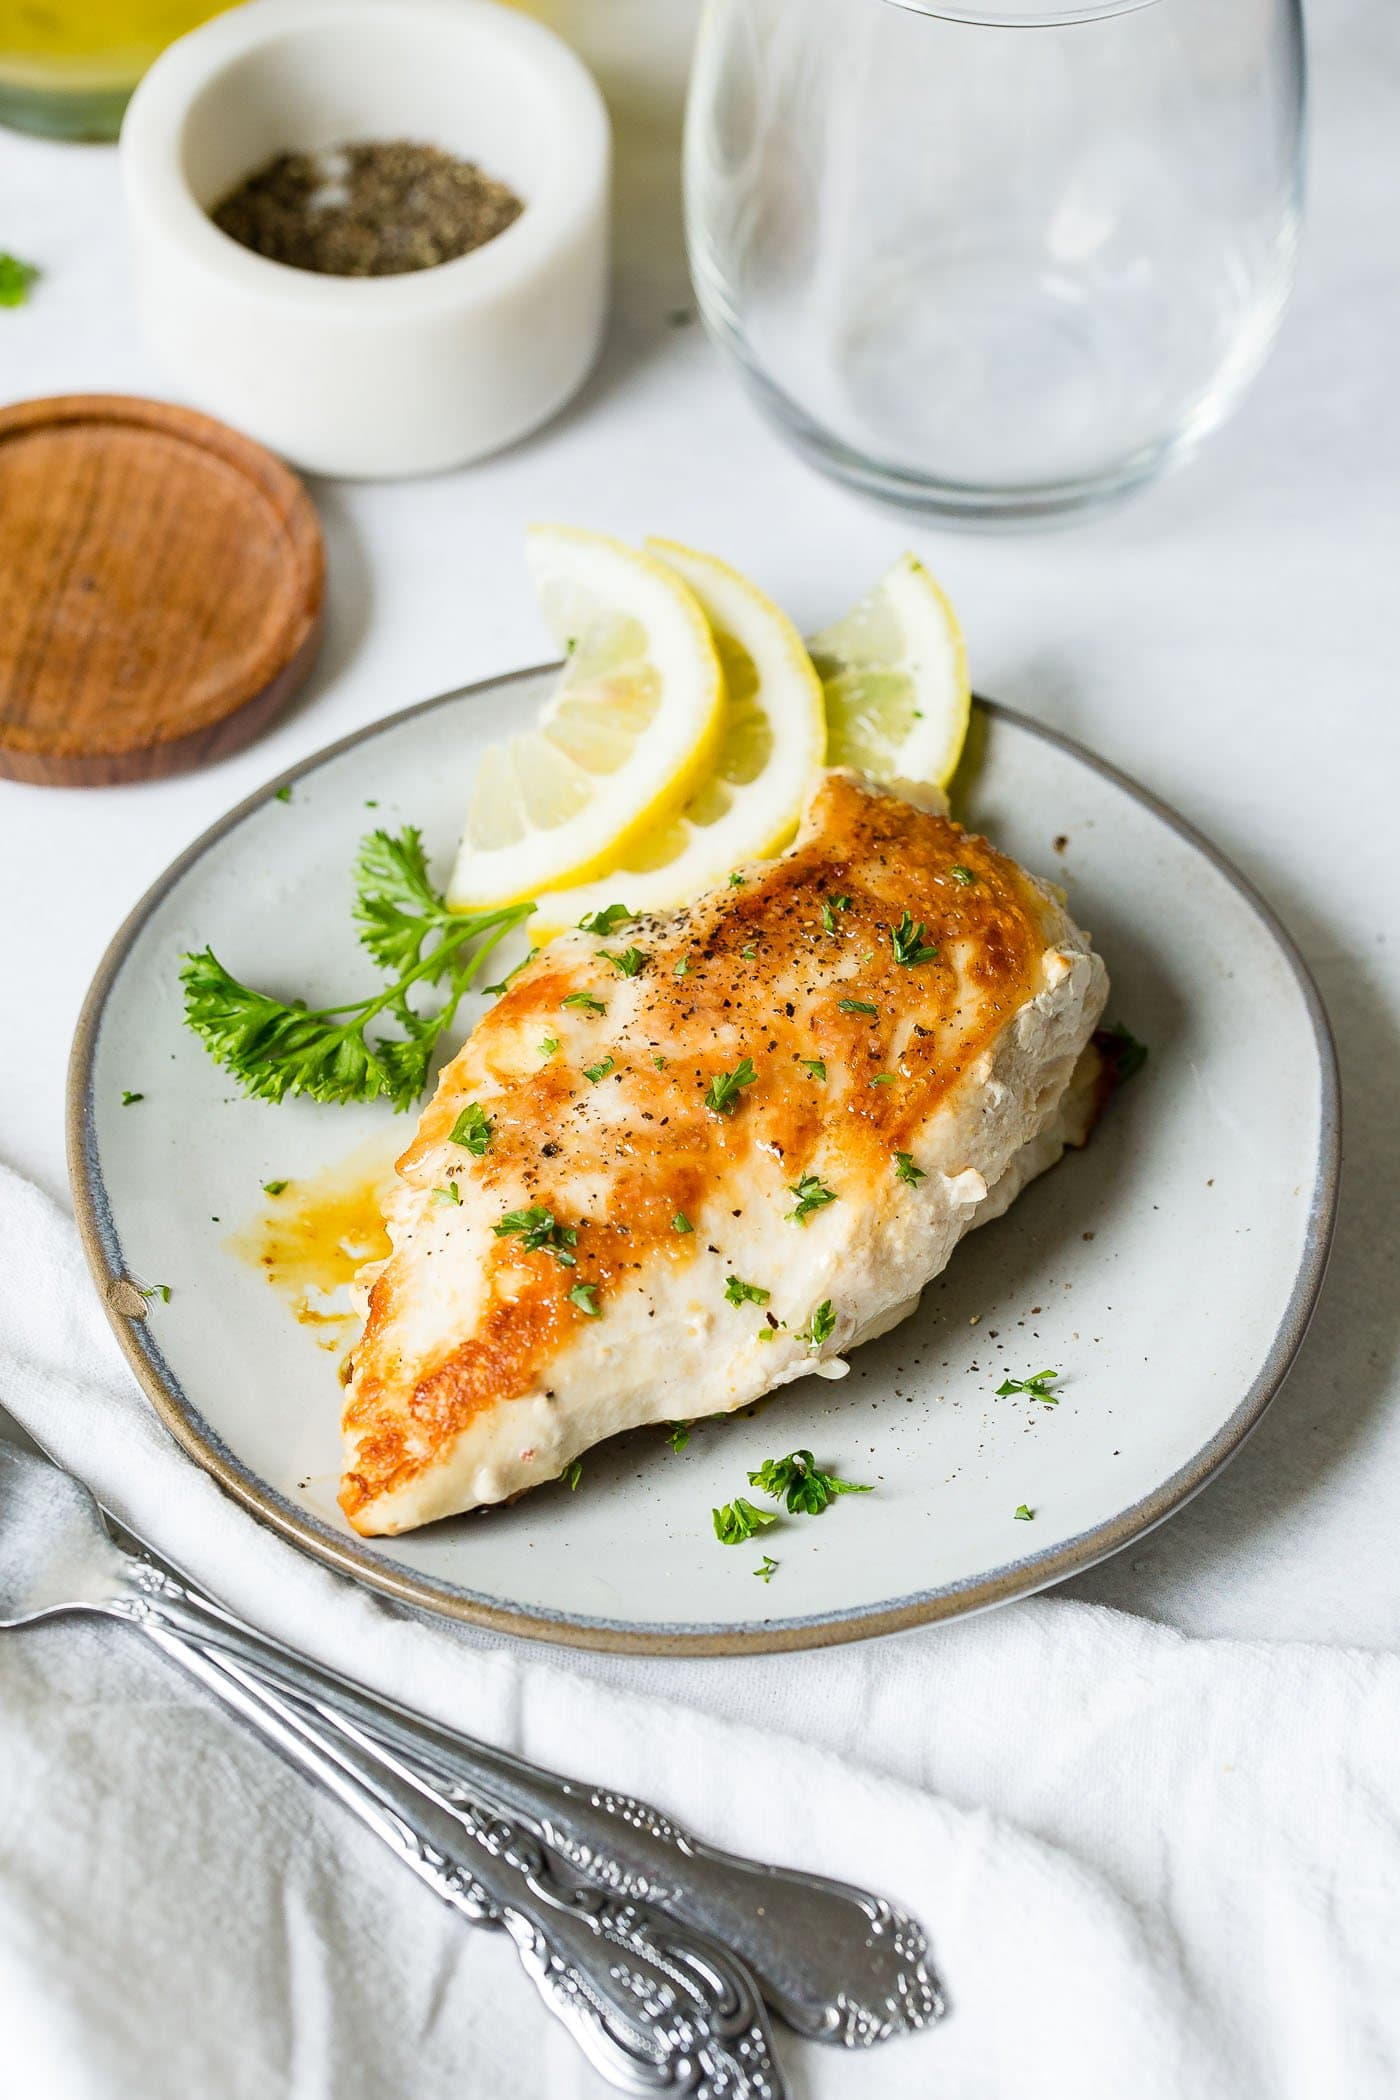 A perfectly cooked chicken breast on a white plate.  There are three slices of lemon and some fresh parsley next to the chicken.  A wooden coaster and salt and pepper are in the background.